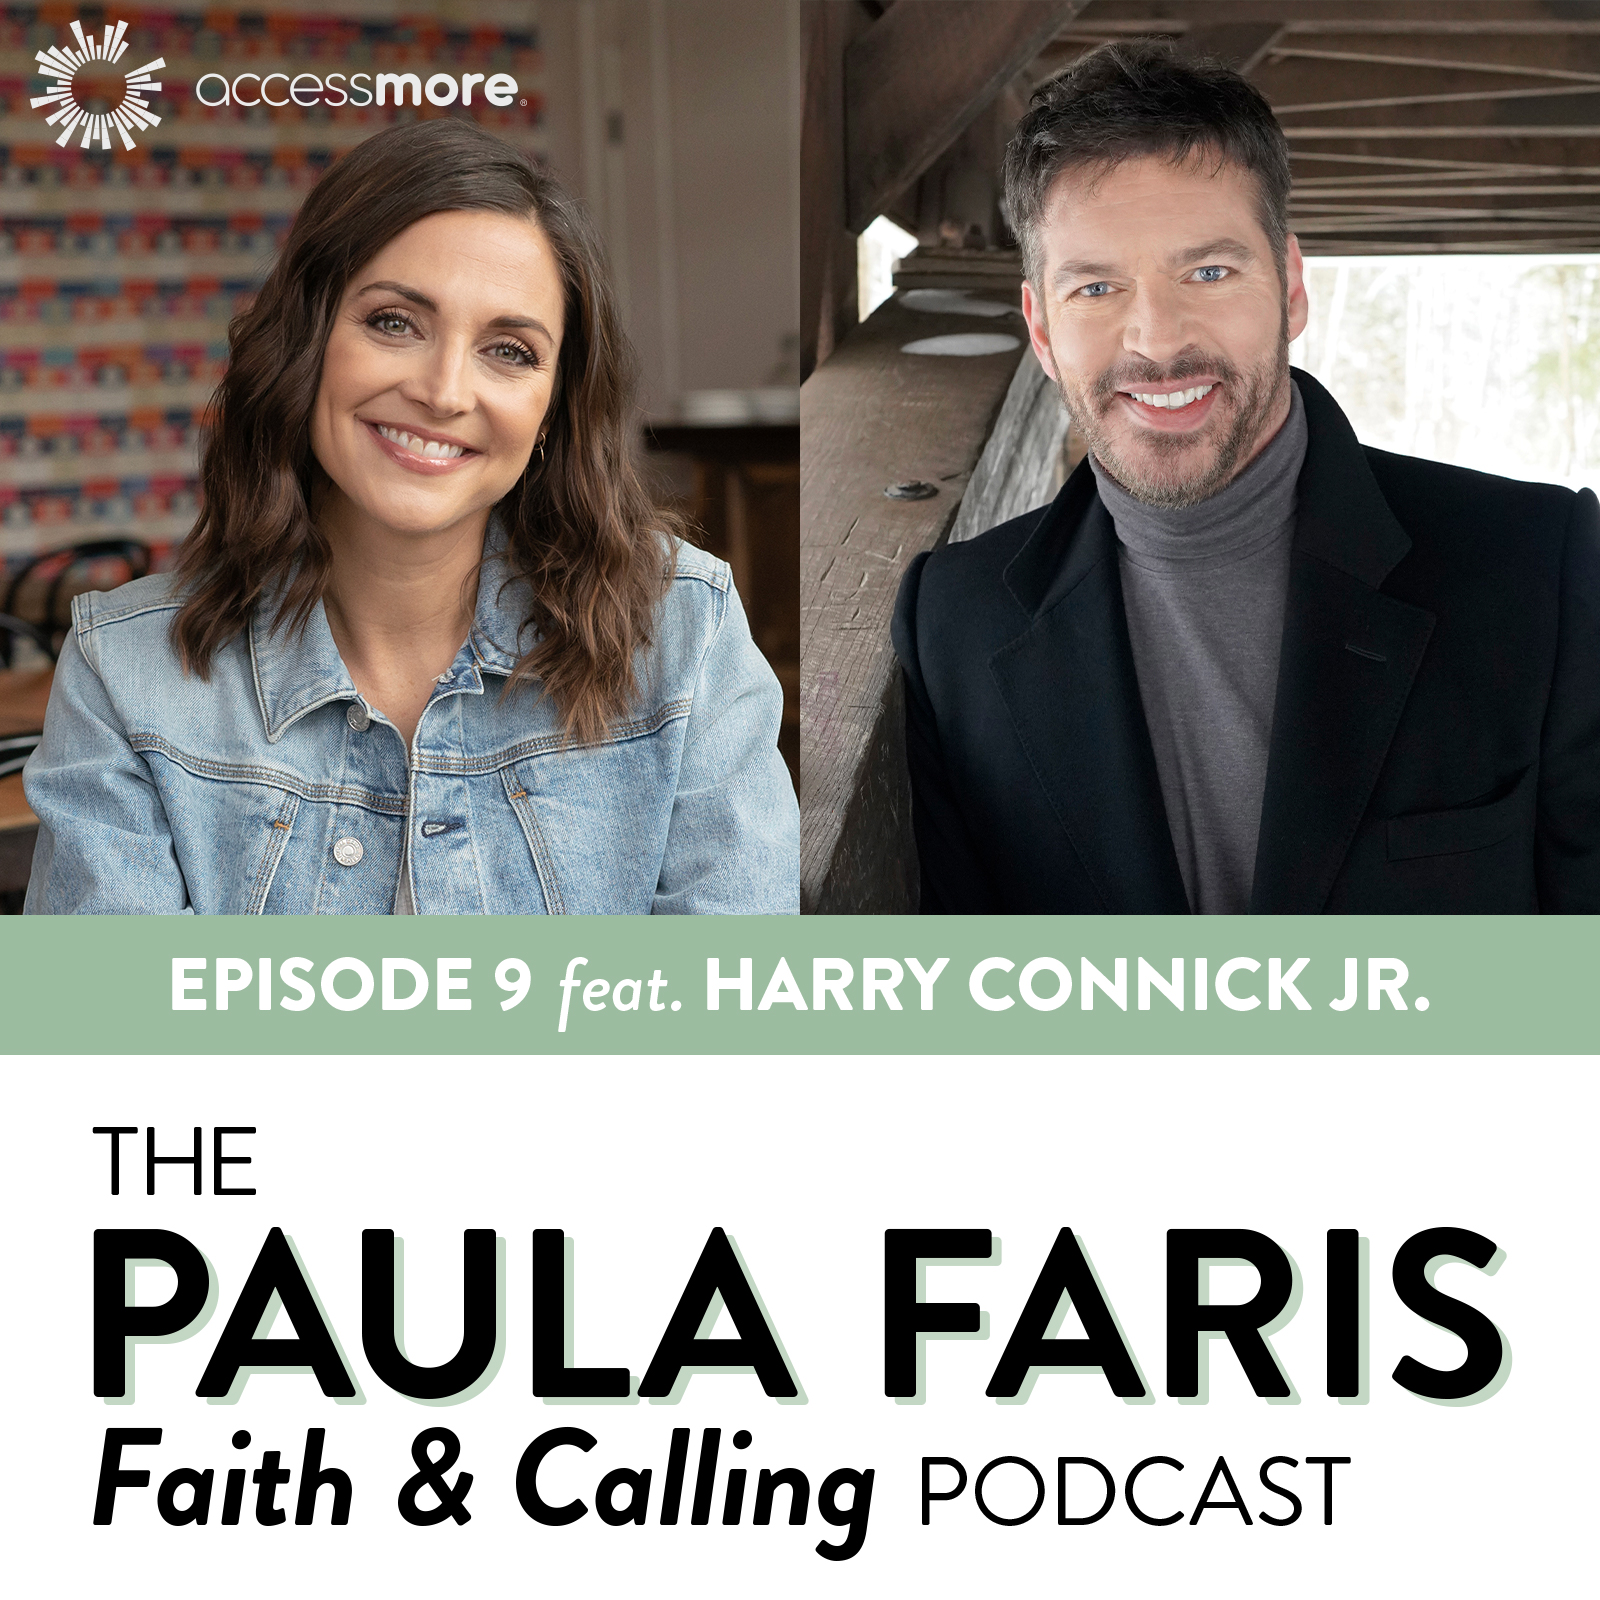 Ep 9 - Harry Connick Jr.: Love, Loss and Finding Your Calling